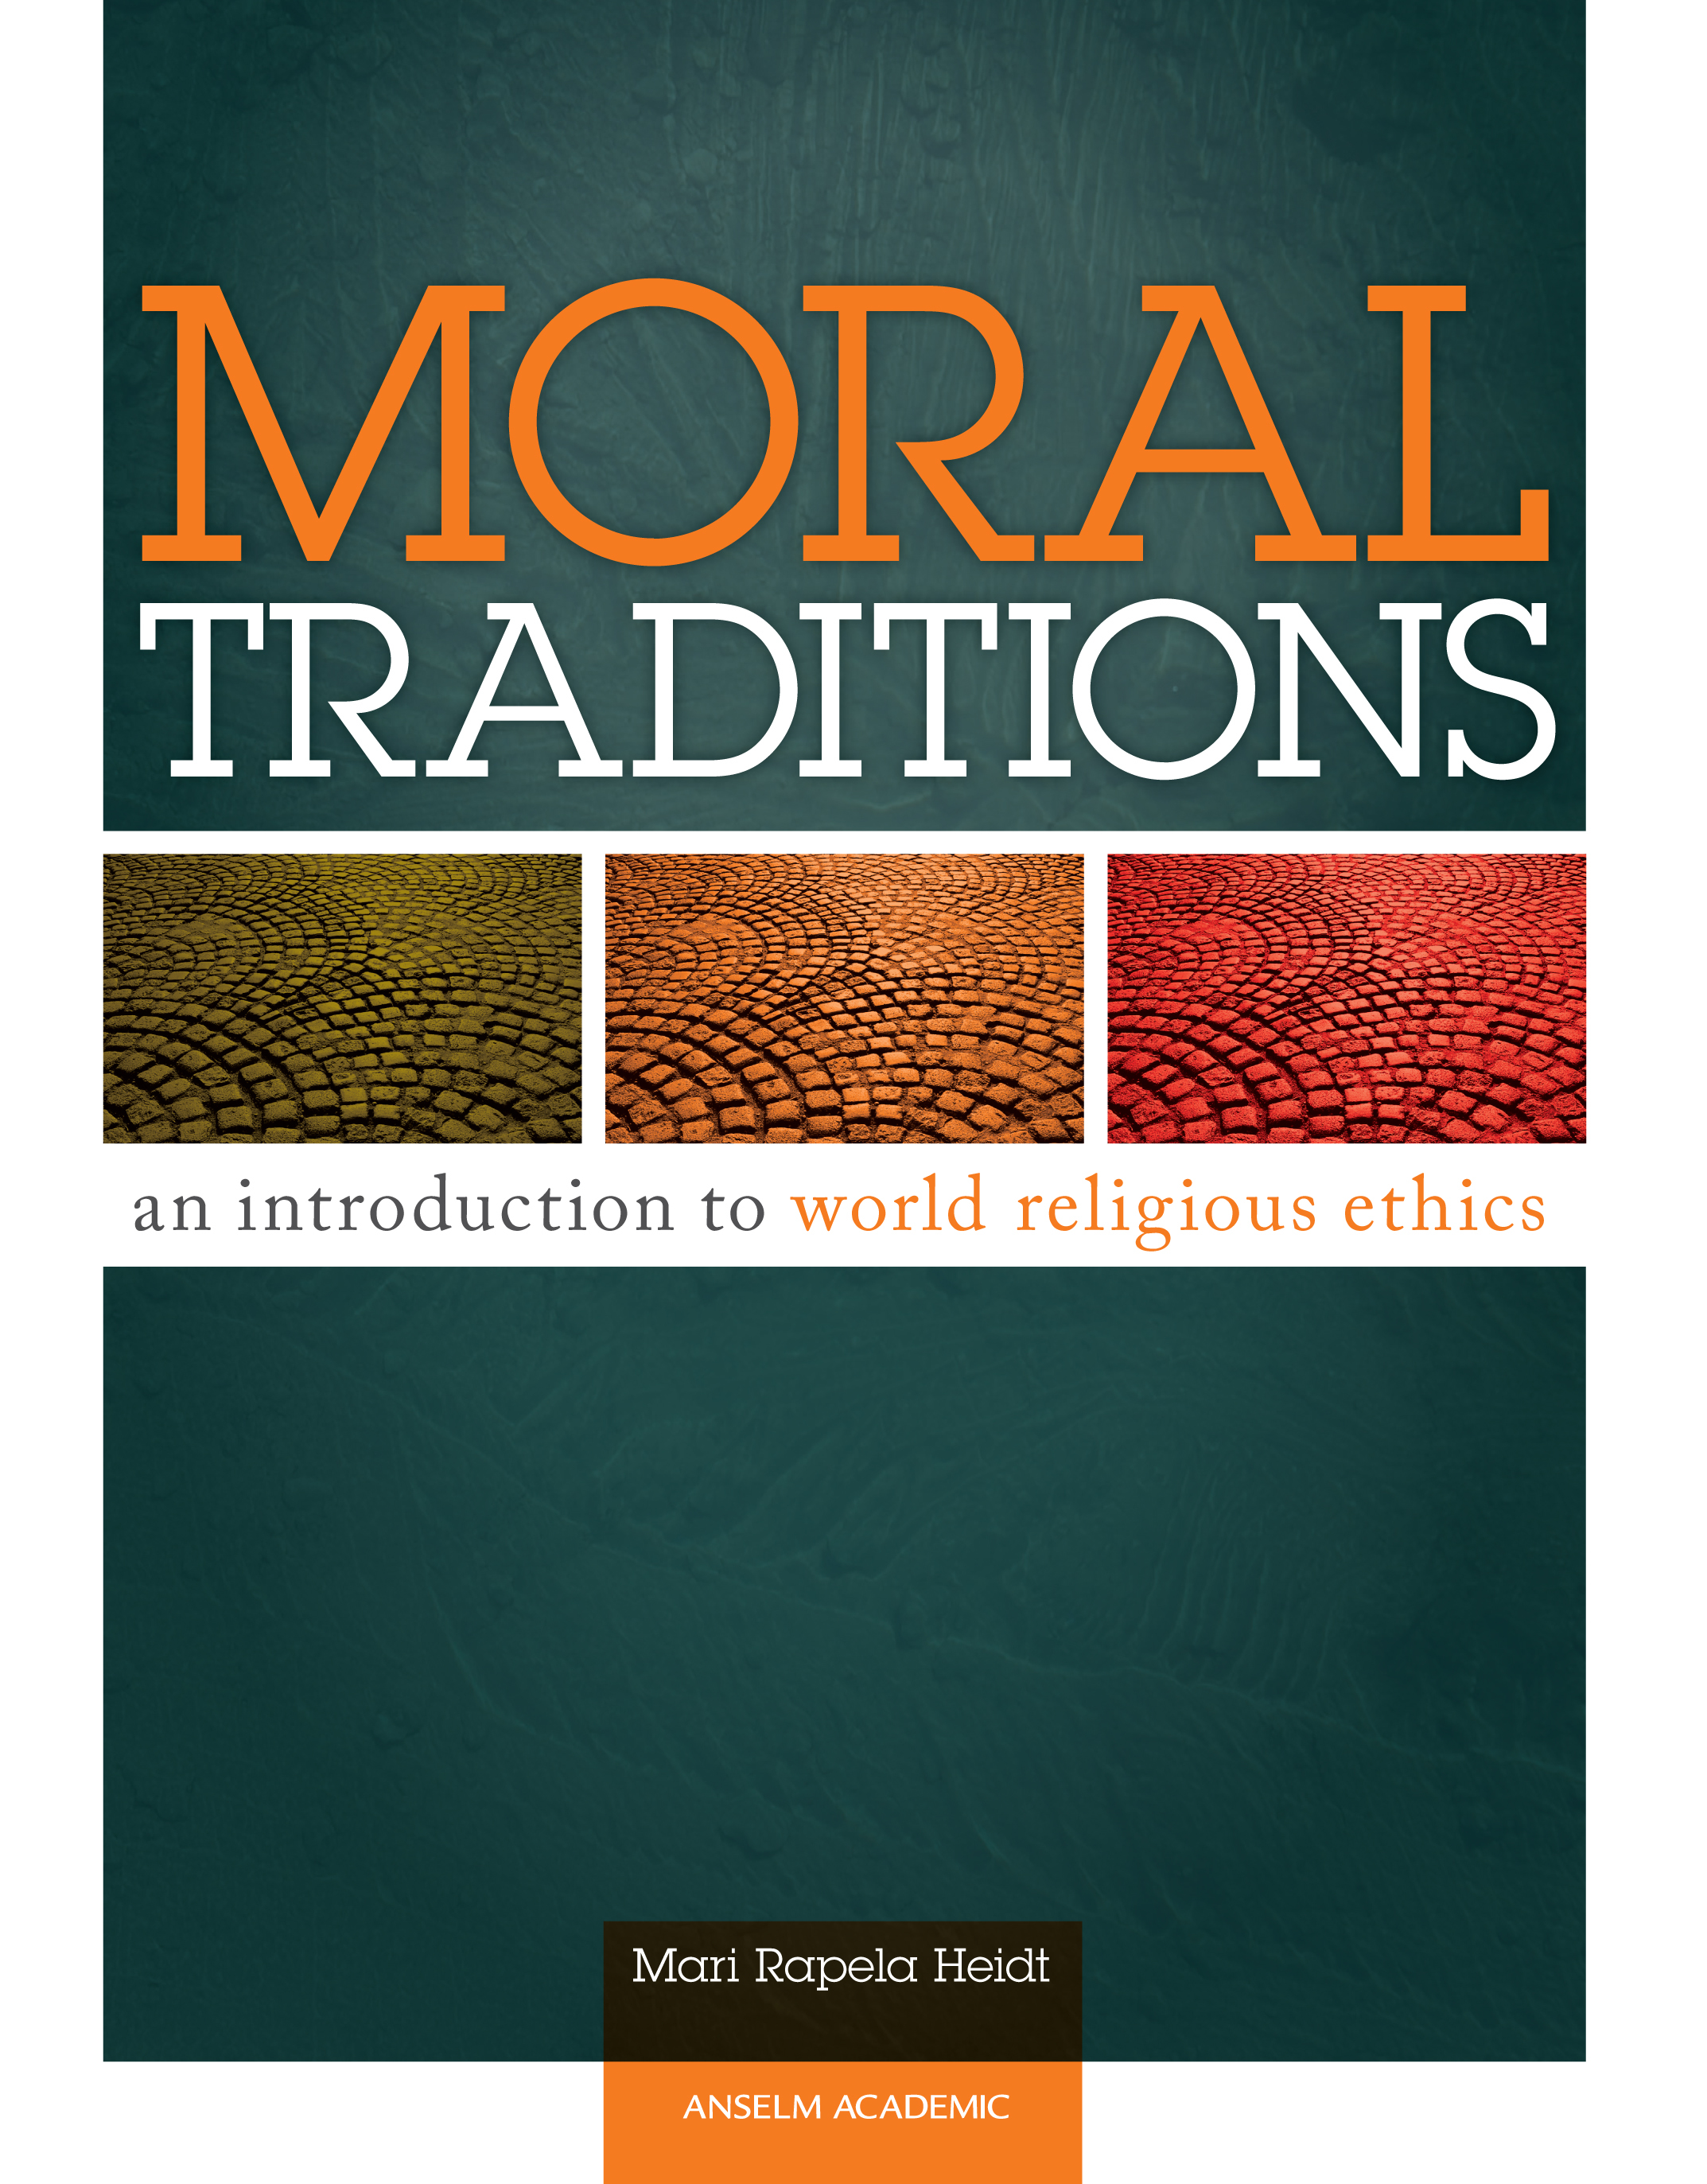 Moral Traditions: An Introduction to World Religious Ethics - ePub